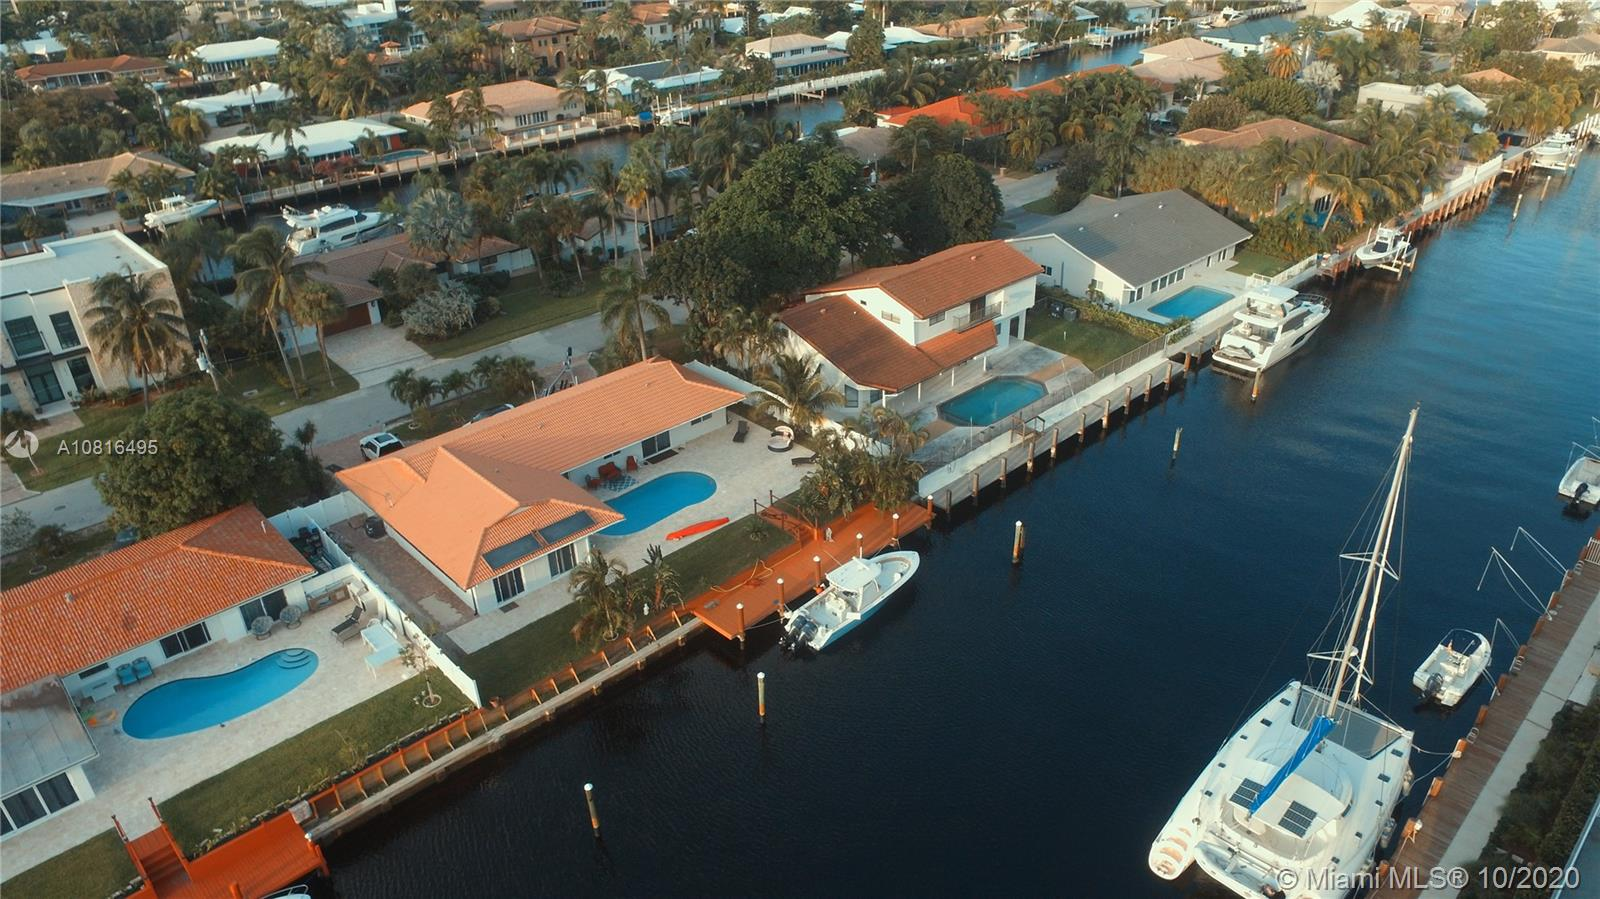 Attractively renovated waterfront home in Coral Ridge. 4 bedrooms 2 baths with split bedroom floor plan. House features new kitchen with quartz counter tops, stainless appliances, tiled floors; new bathrooms, new dock 80 ft dock with 100ft of water frontage. Park your boat by your house and live a dream. No fixed bridges, ocean access. Many restaurants near by. Excellent infrastructure of the area with walking distance to the ocean, mall, restaurants and shops. Excellent location. Dining, Living and Lounge Areas open to Pool. House features Impact windows/doors and a 2 car Garage. Nearby Coral Ridge Country Club Golf, dining, shopping & beach.